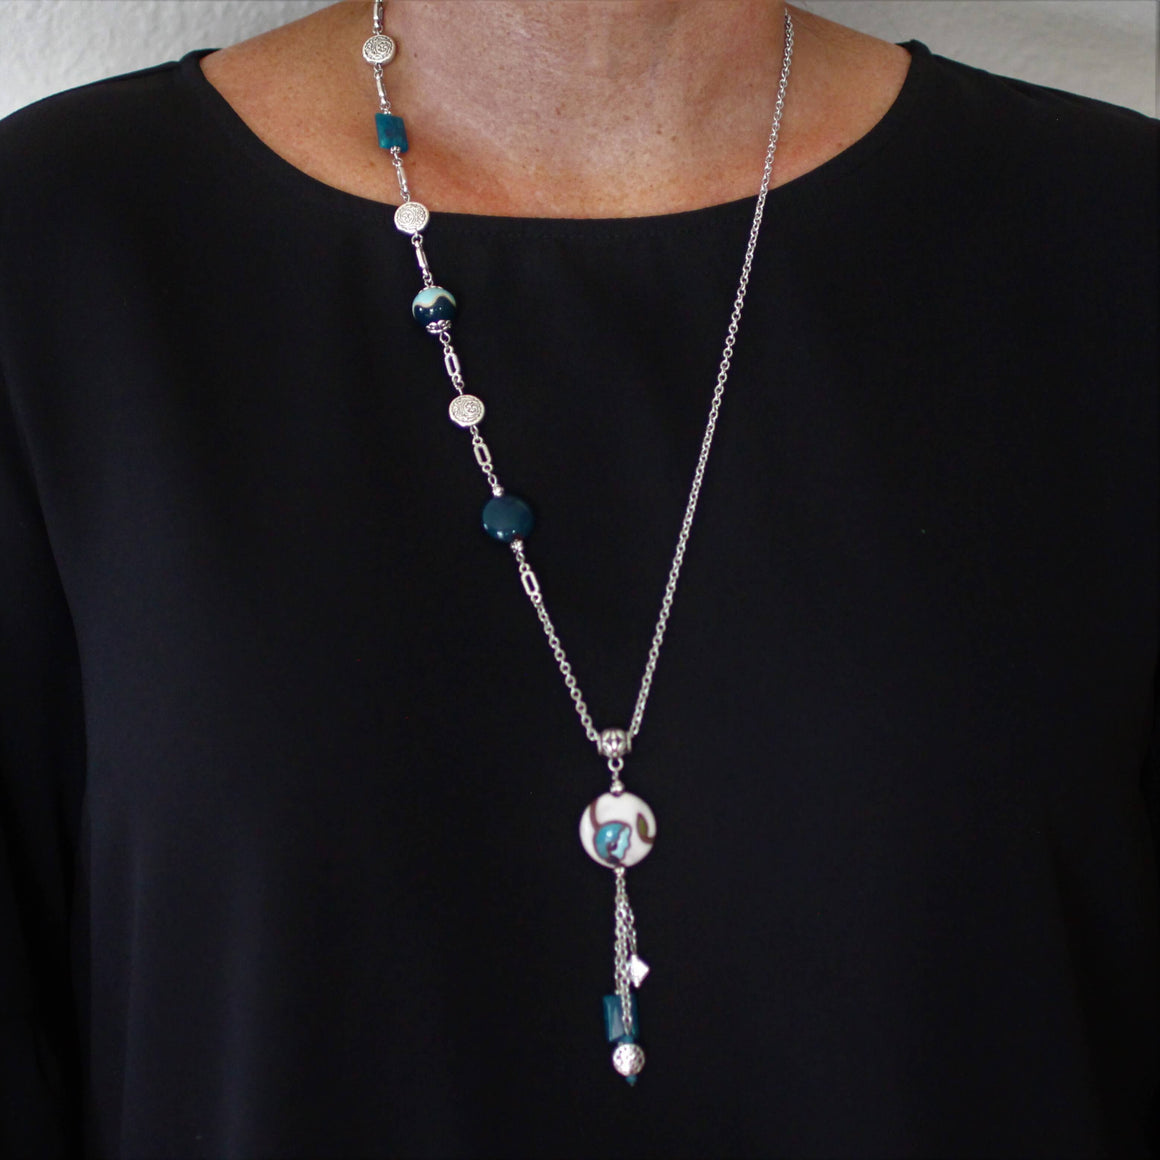 Teal Flower Golem Pendant Necklace with Apatite Stone and Teal Golem beads